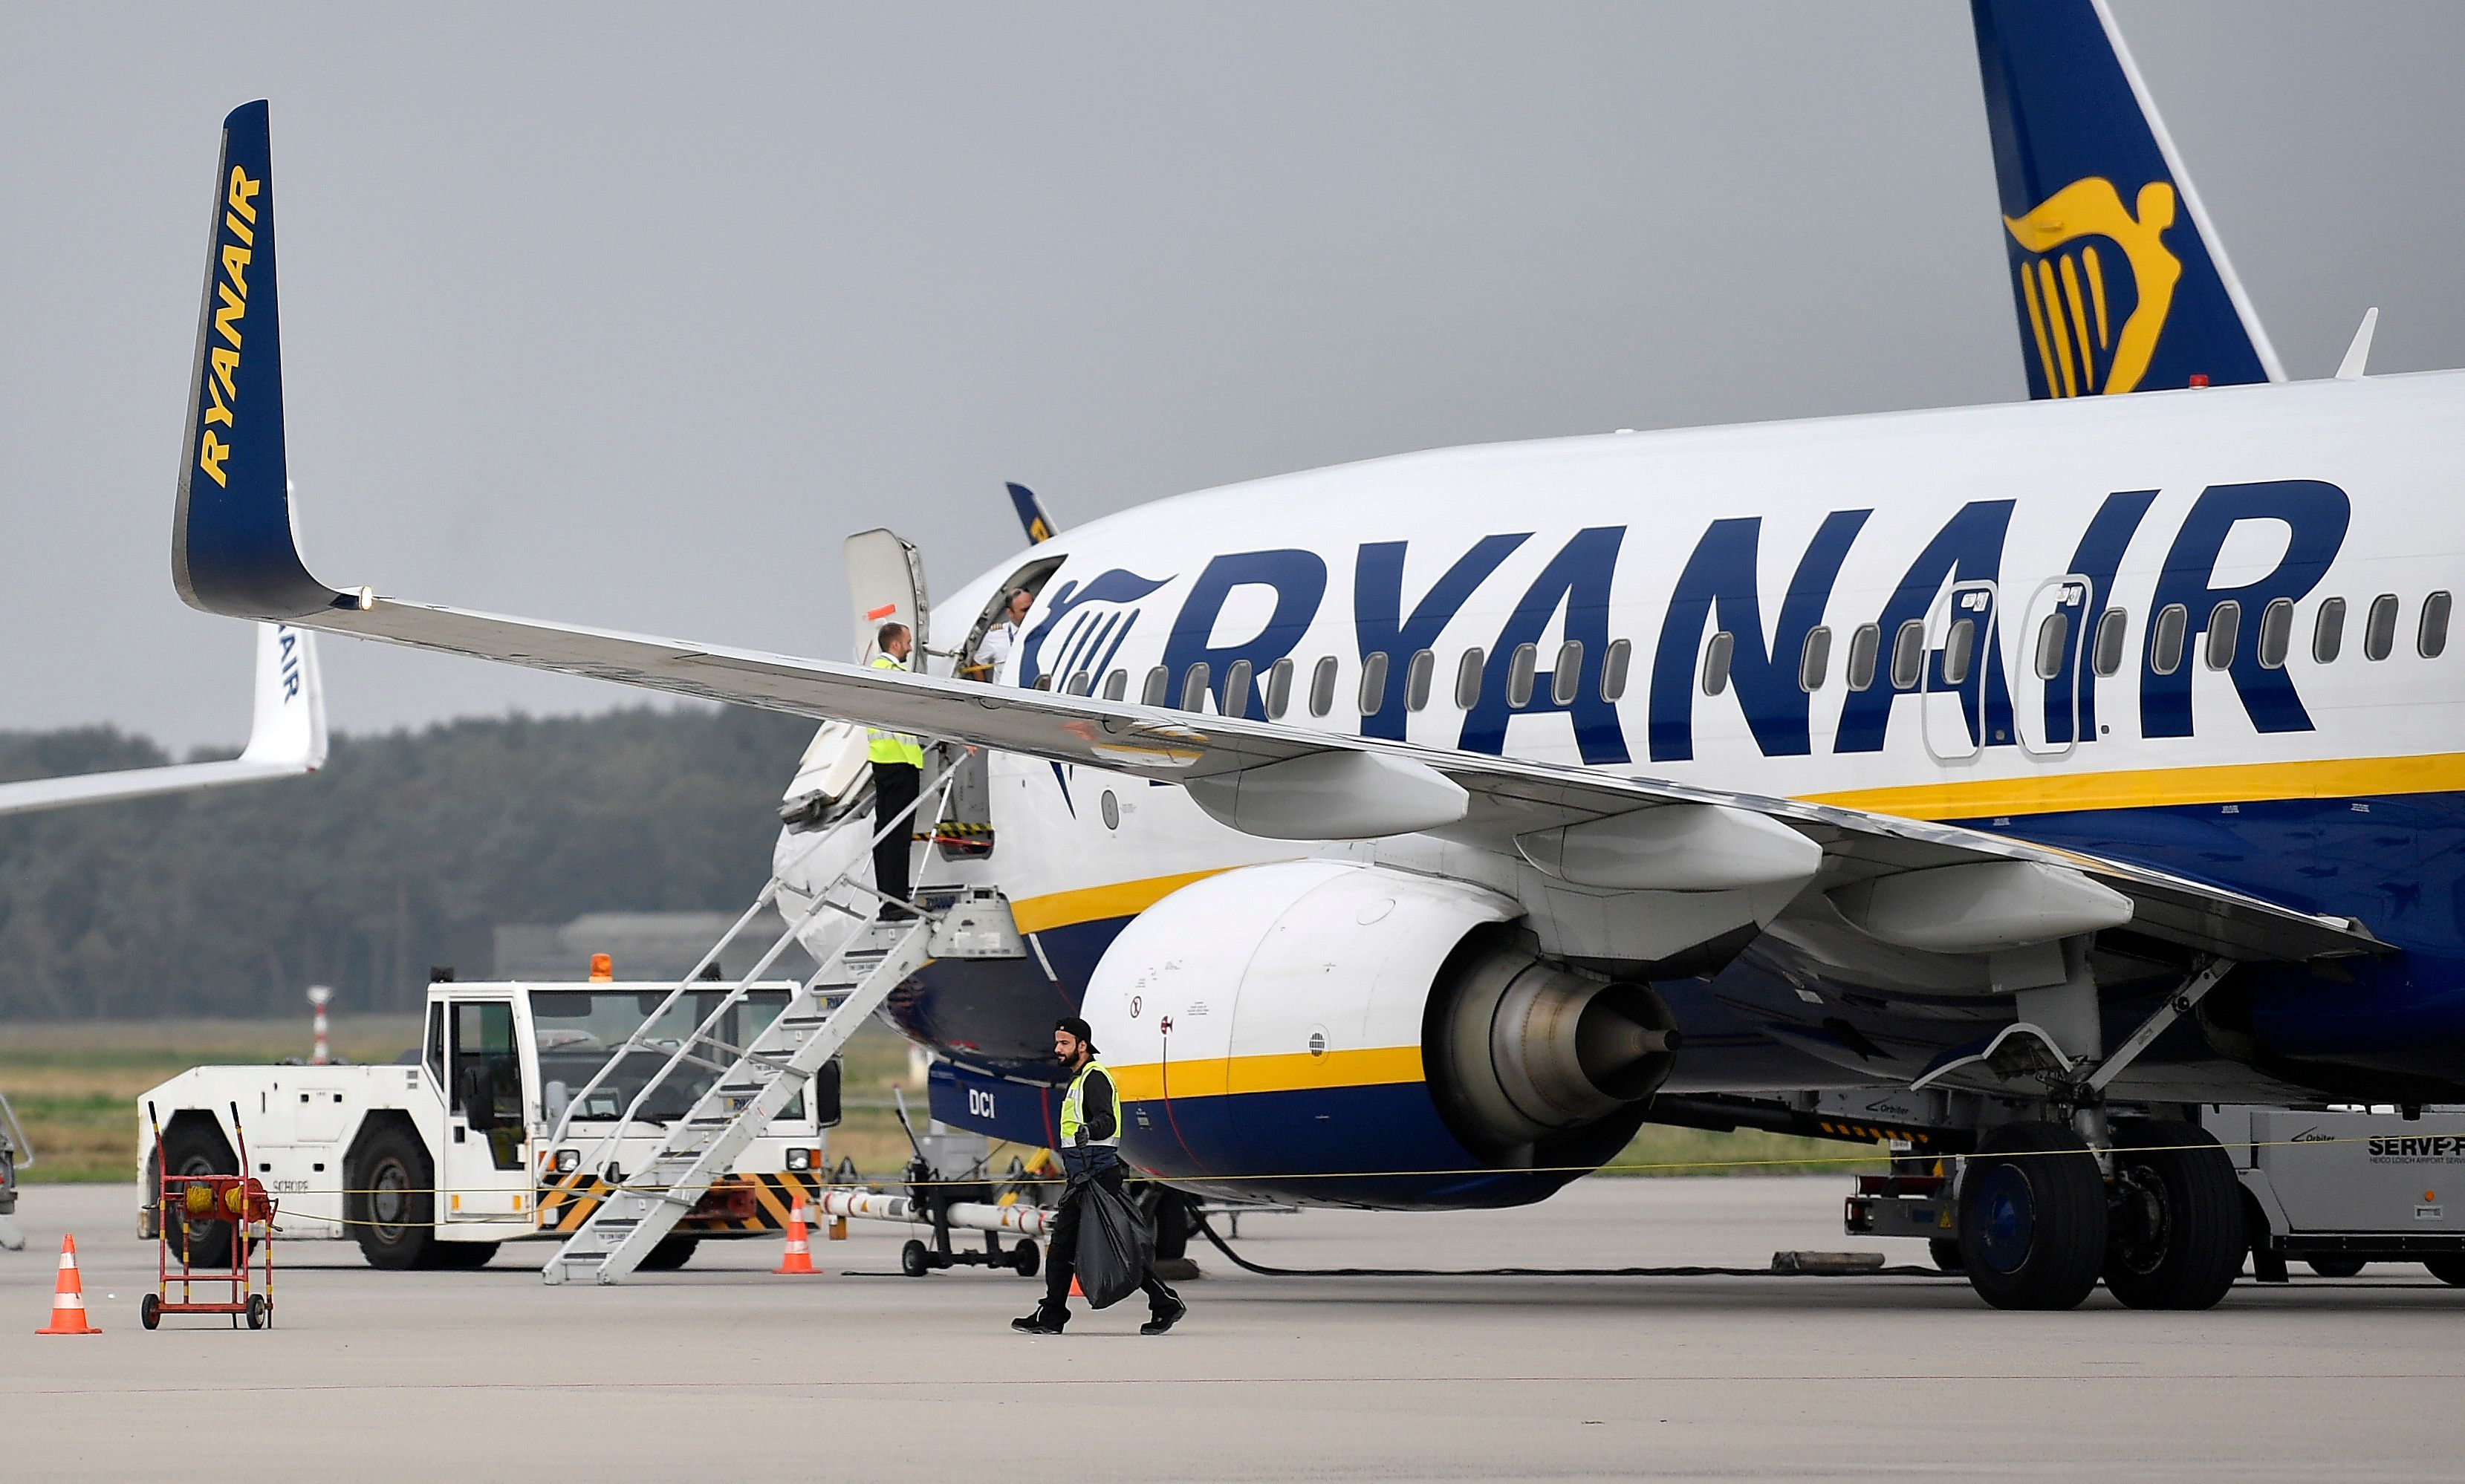 Bound Ryanair Plane Full Of Passengers Seized By French Authorities